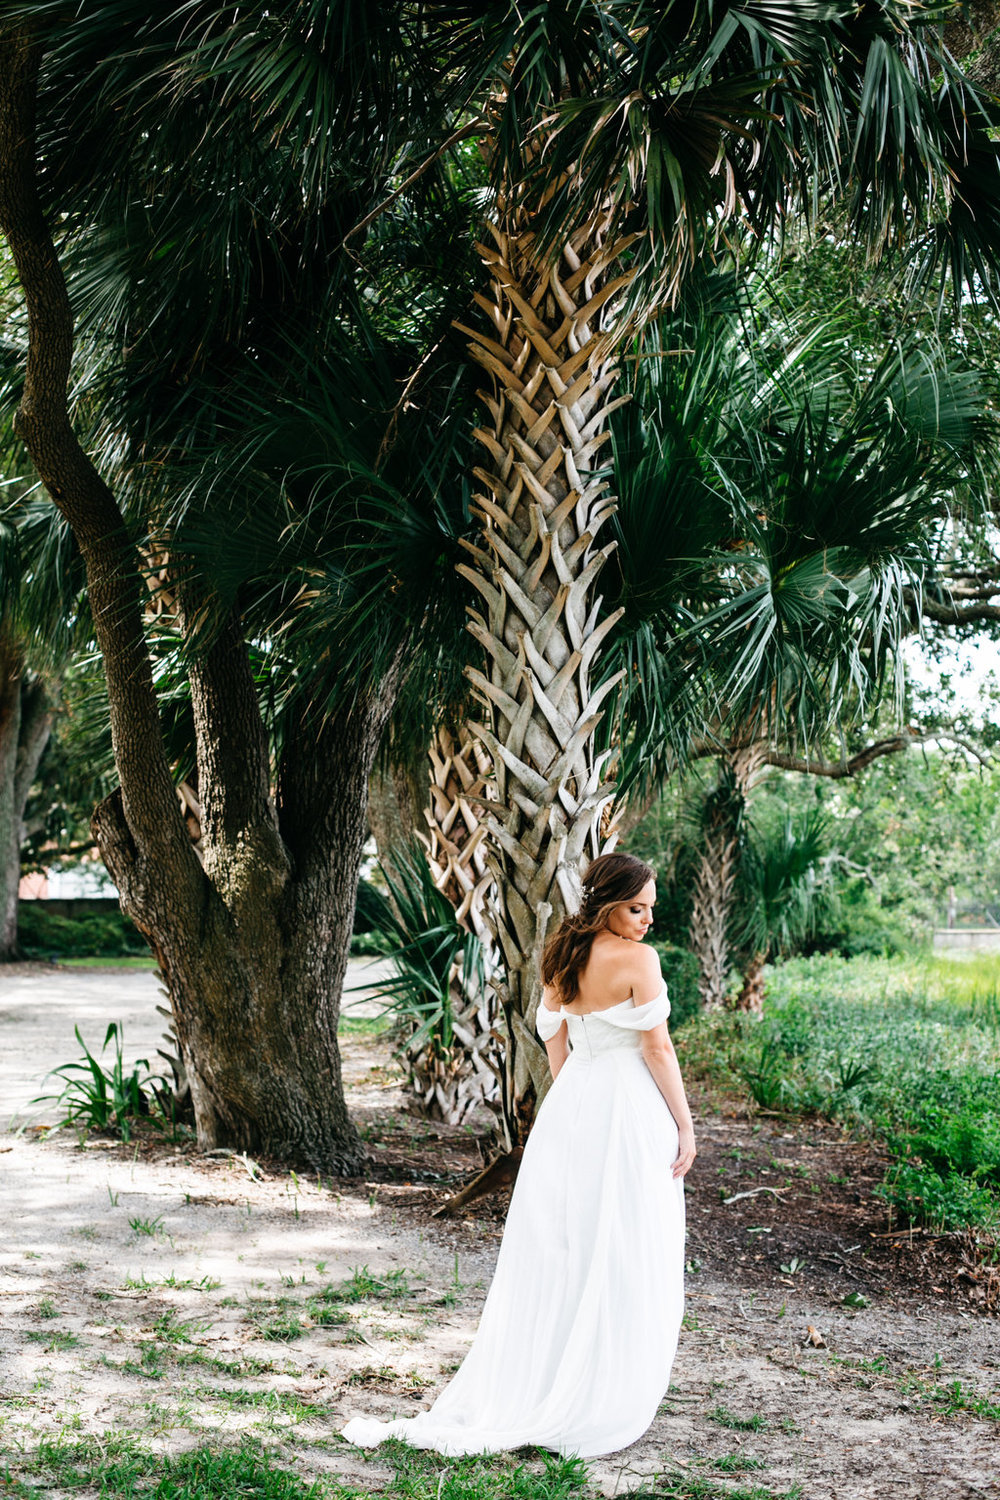 sara-bee-photography-charleston-wedding-savannah-weddings-ivory-and-beau-bridal-boutique-savannah-wedding-planner-sarah-seven-lafayette-sarah-seven-bride-sarah-seven-bridal-marsh-wedding-lowcountry-wedding-5.jpg